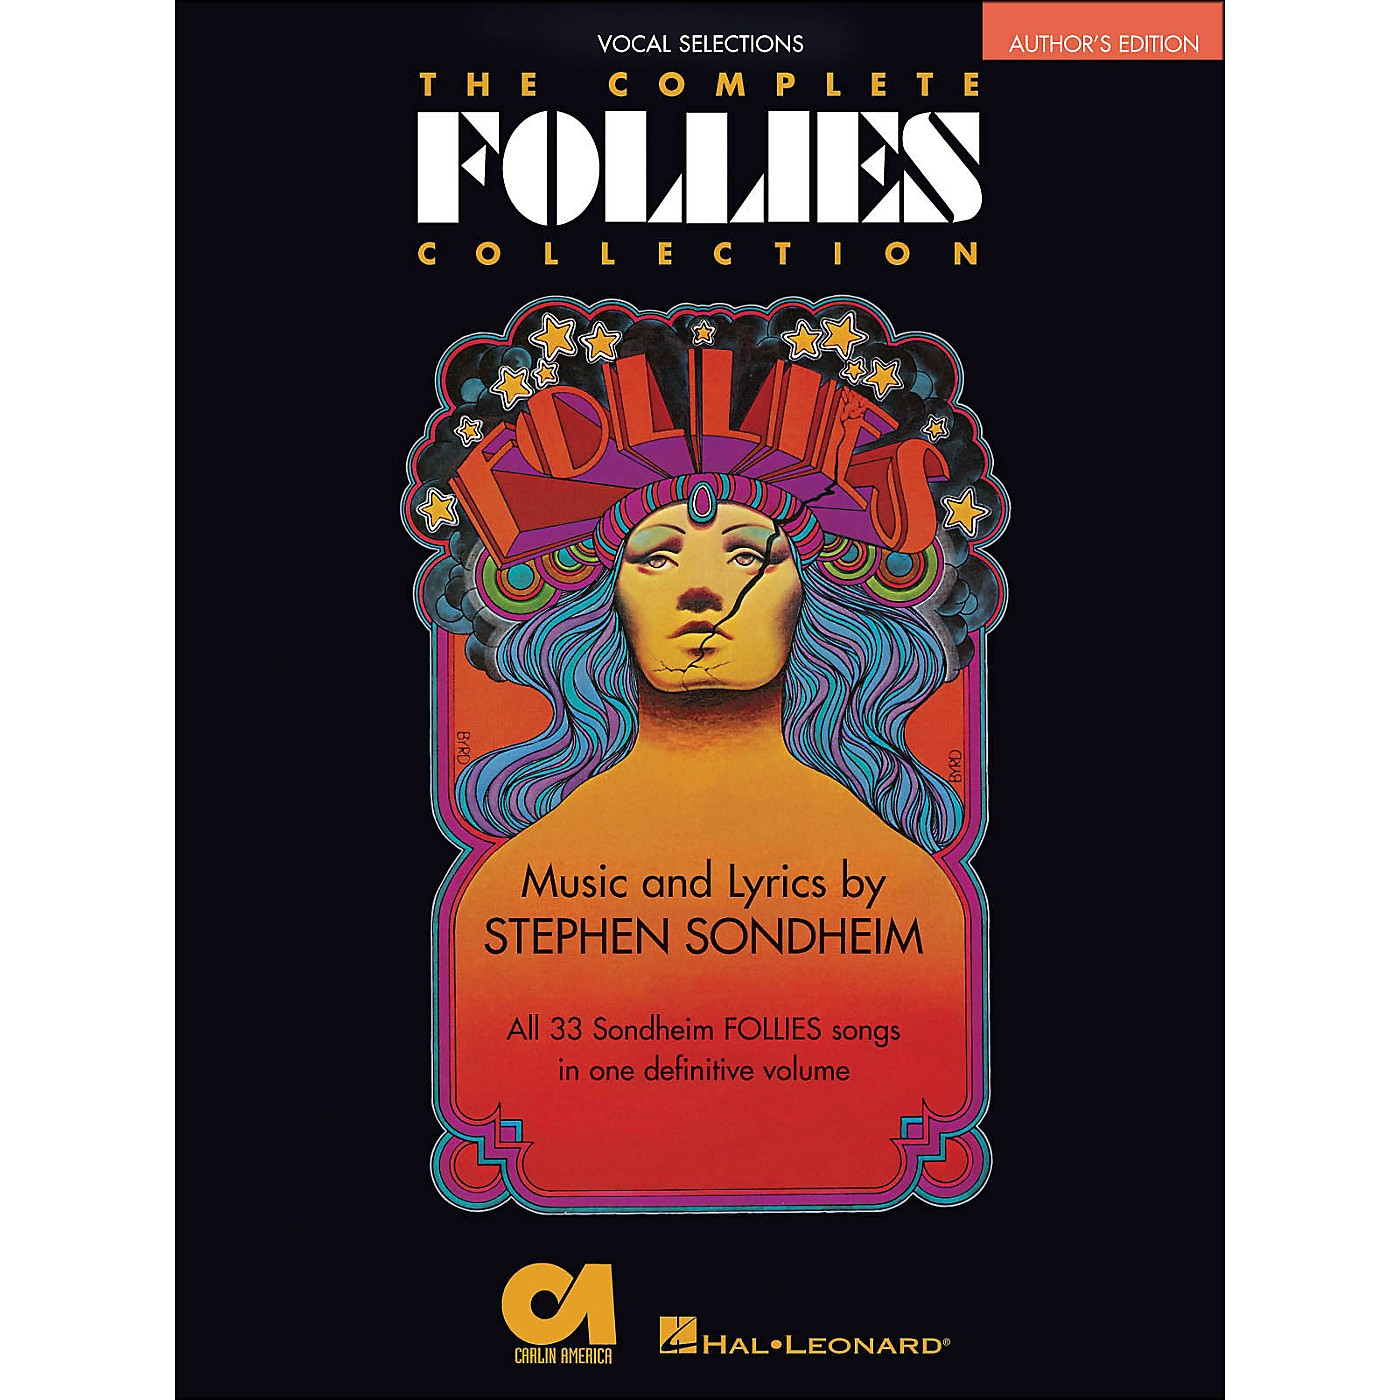 Hal Leonard The Complete Follies Collection Vocal Selections Authors Edition arranged for piano, vocal, and guitar (P/V/G) thumbnail